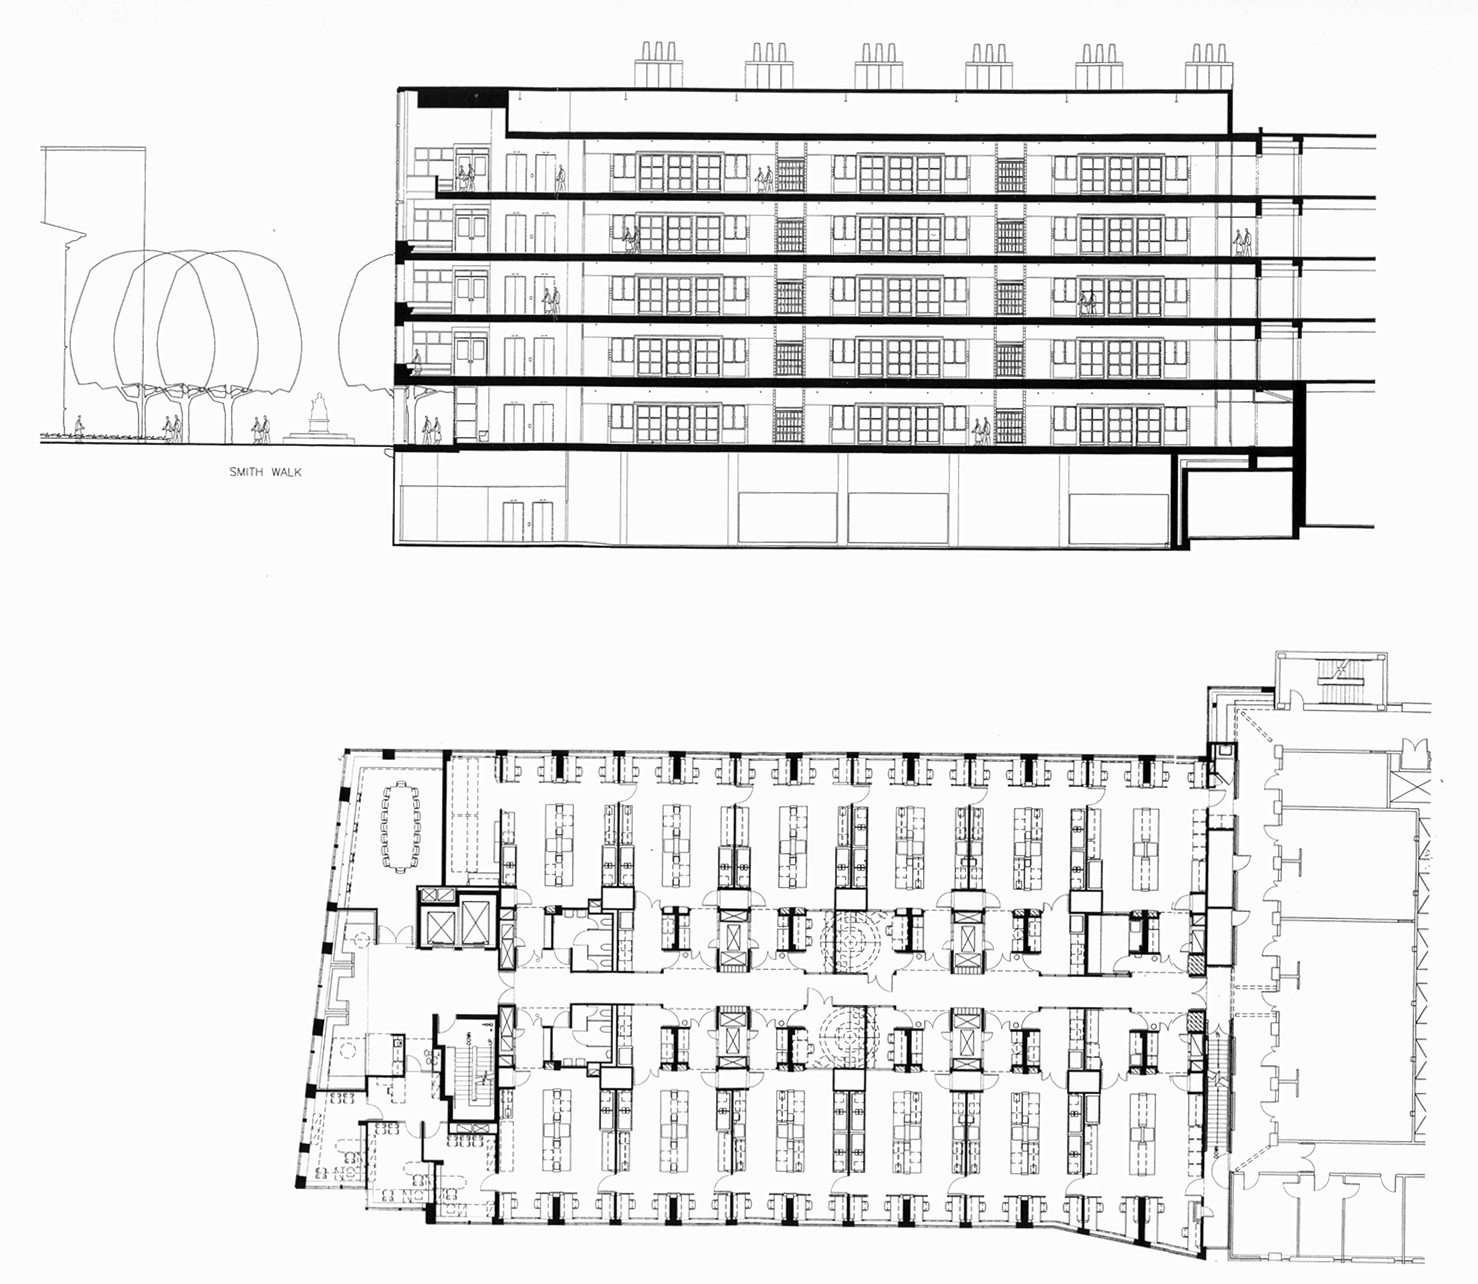 Section and Typical floor plan